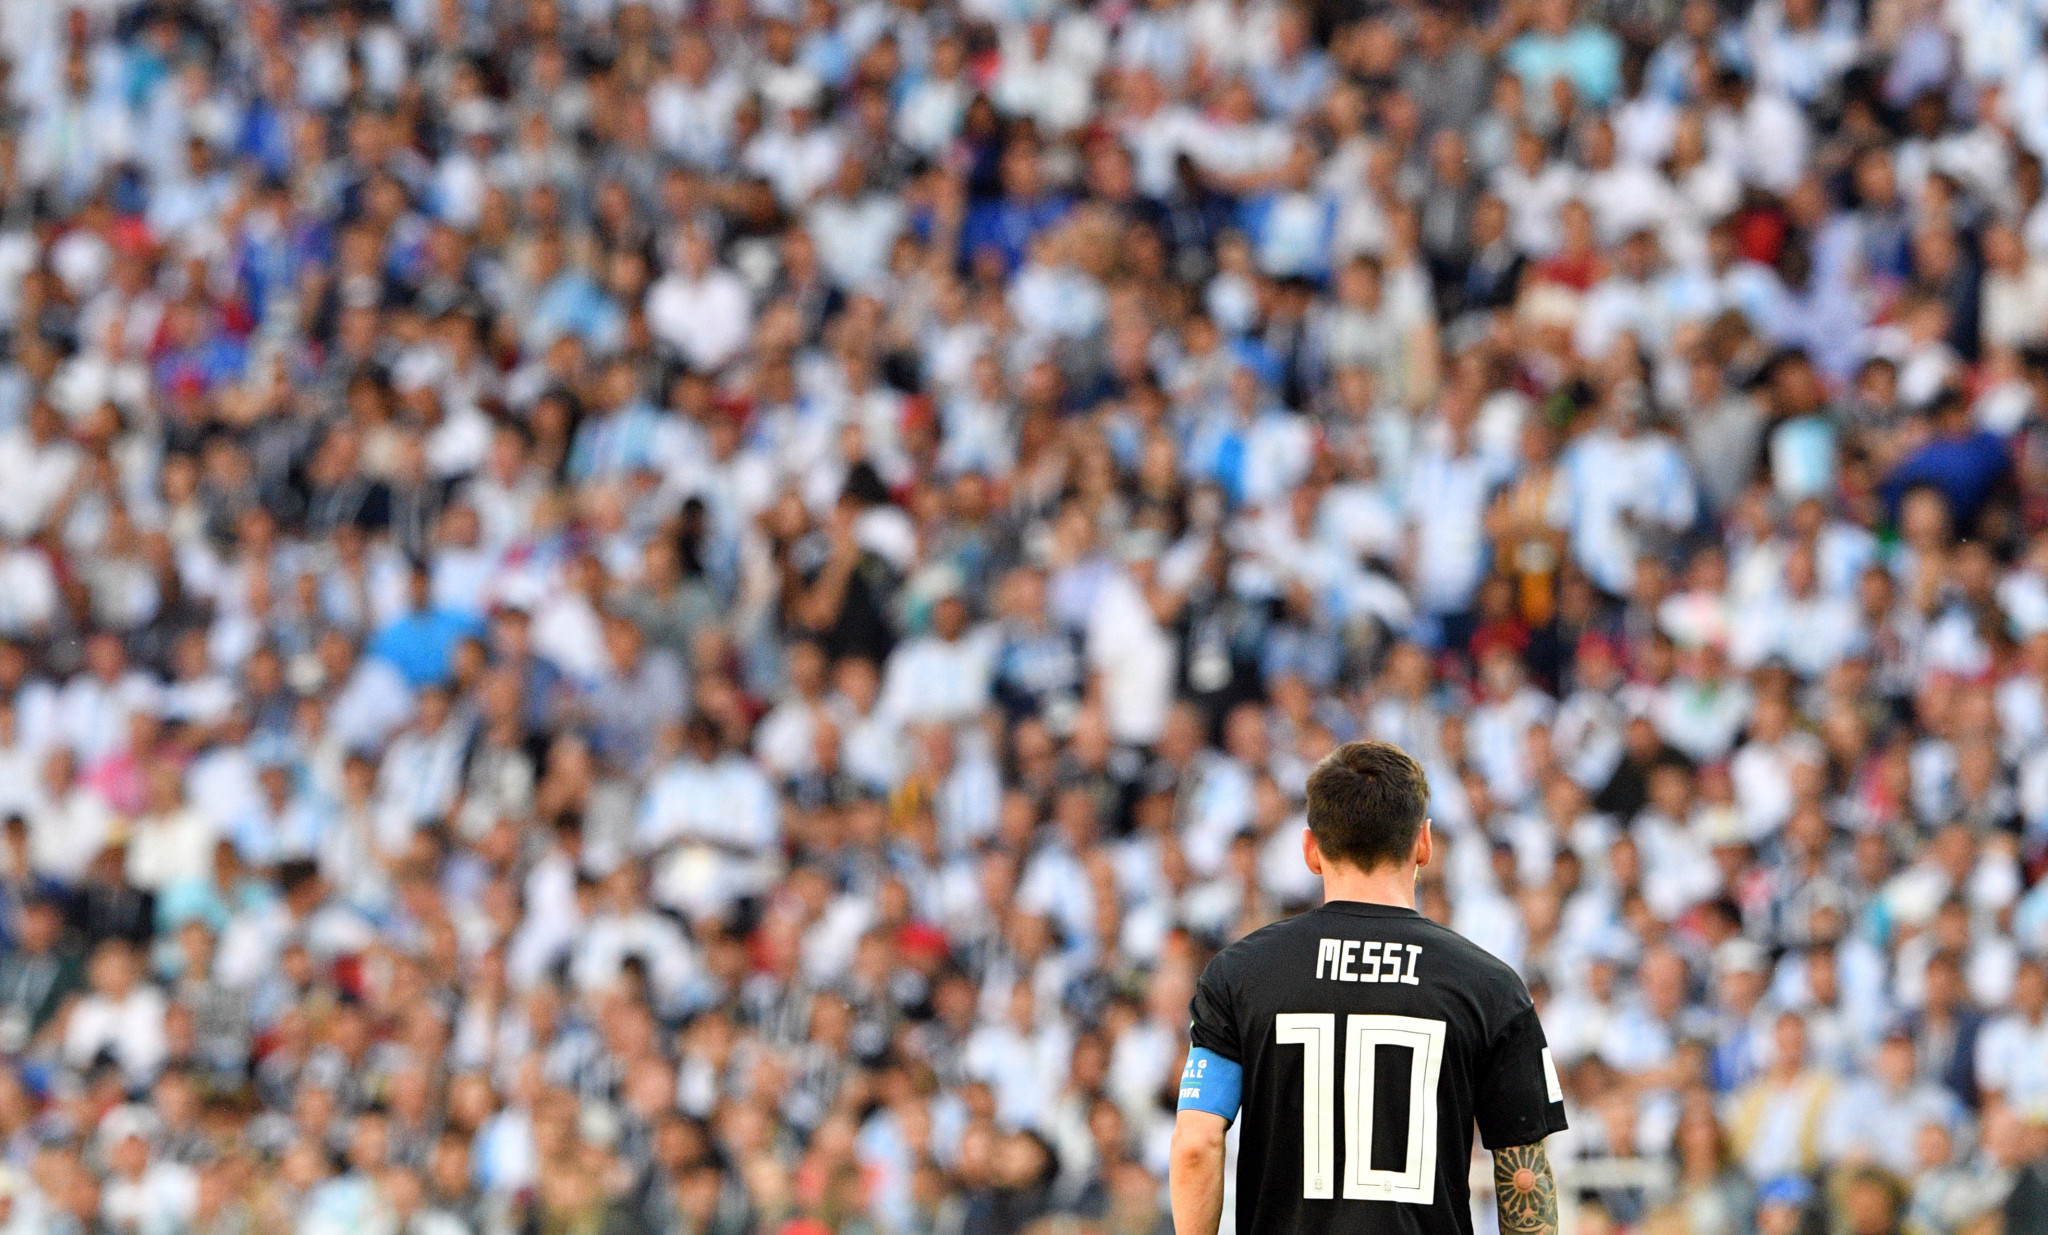 Argentina's Lionel Messi cuts a dejected figure after missing a penalty ©Getty Images